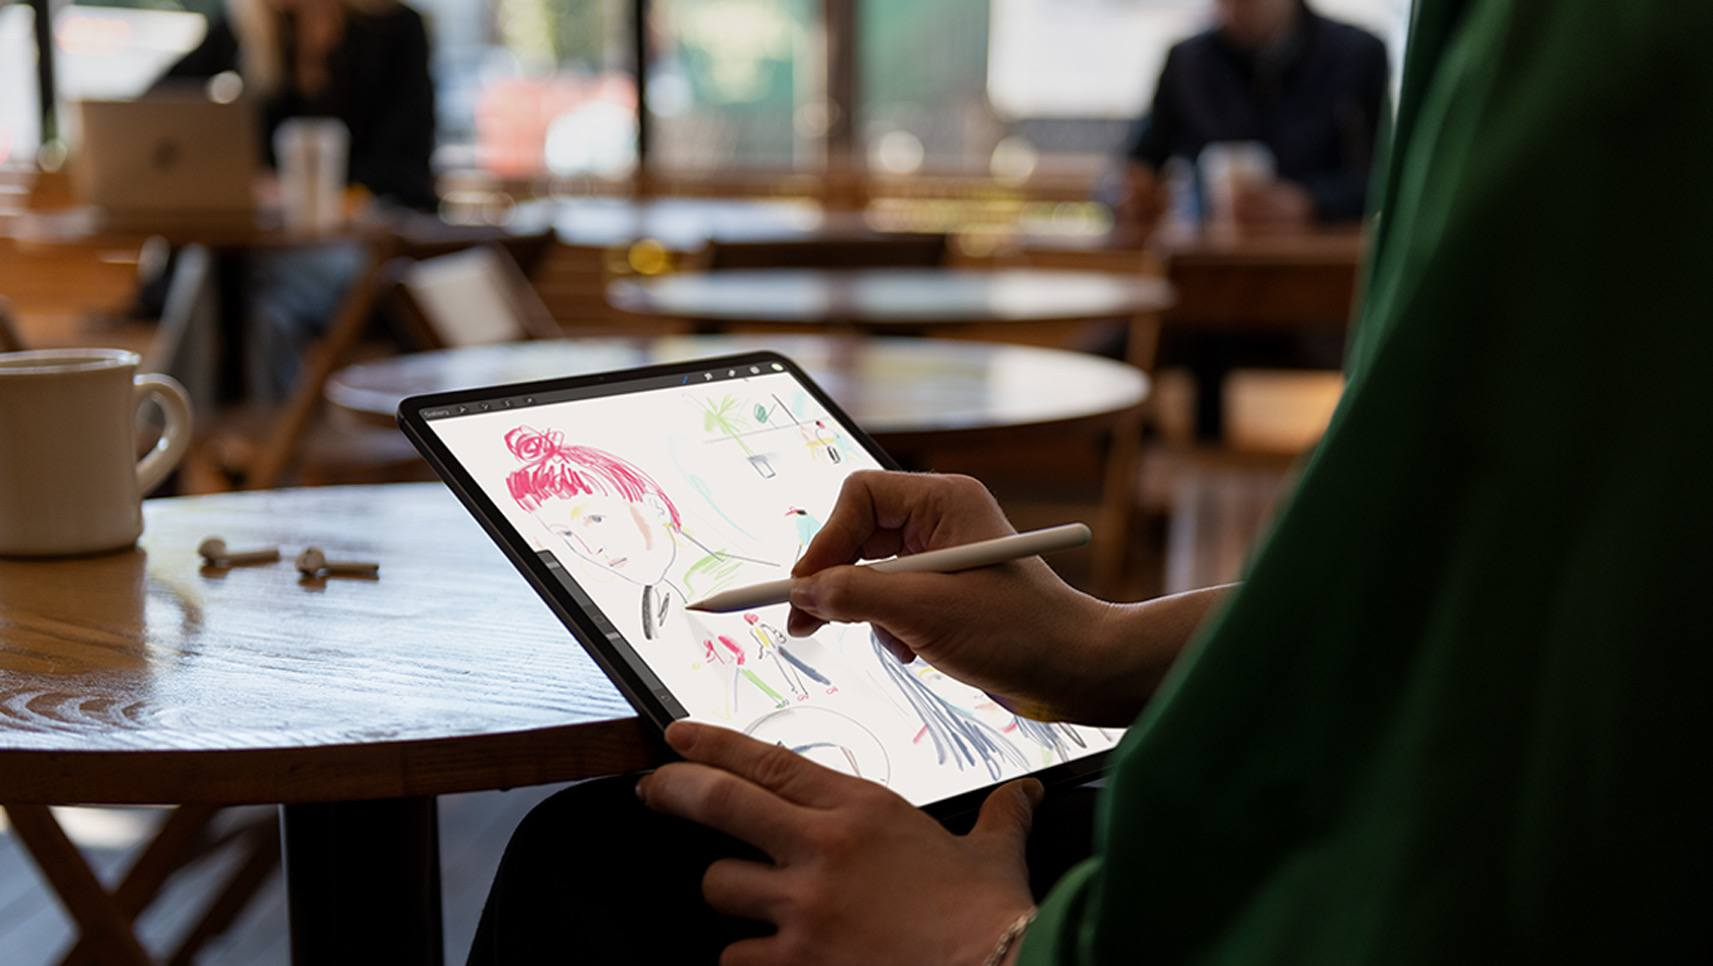 The Apple Pencil is one of several catalysts in the iPad's evolution.